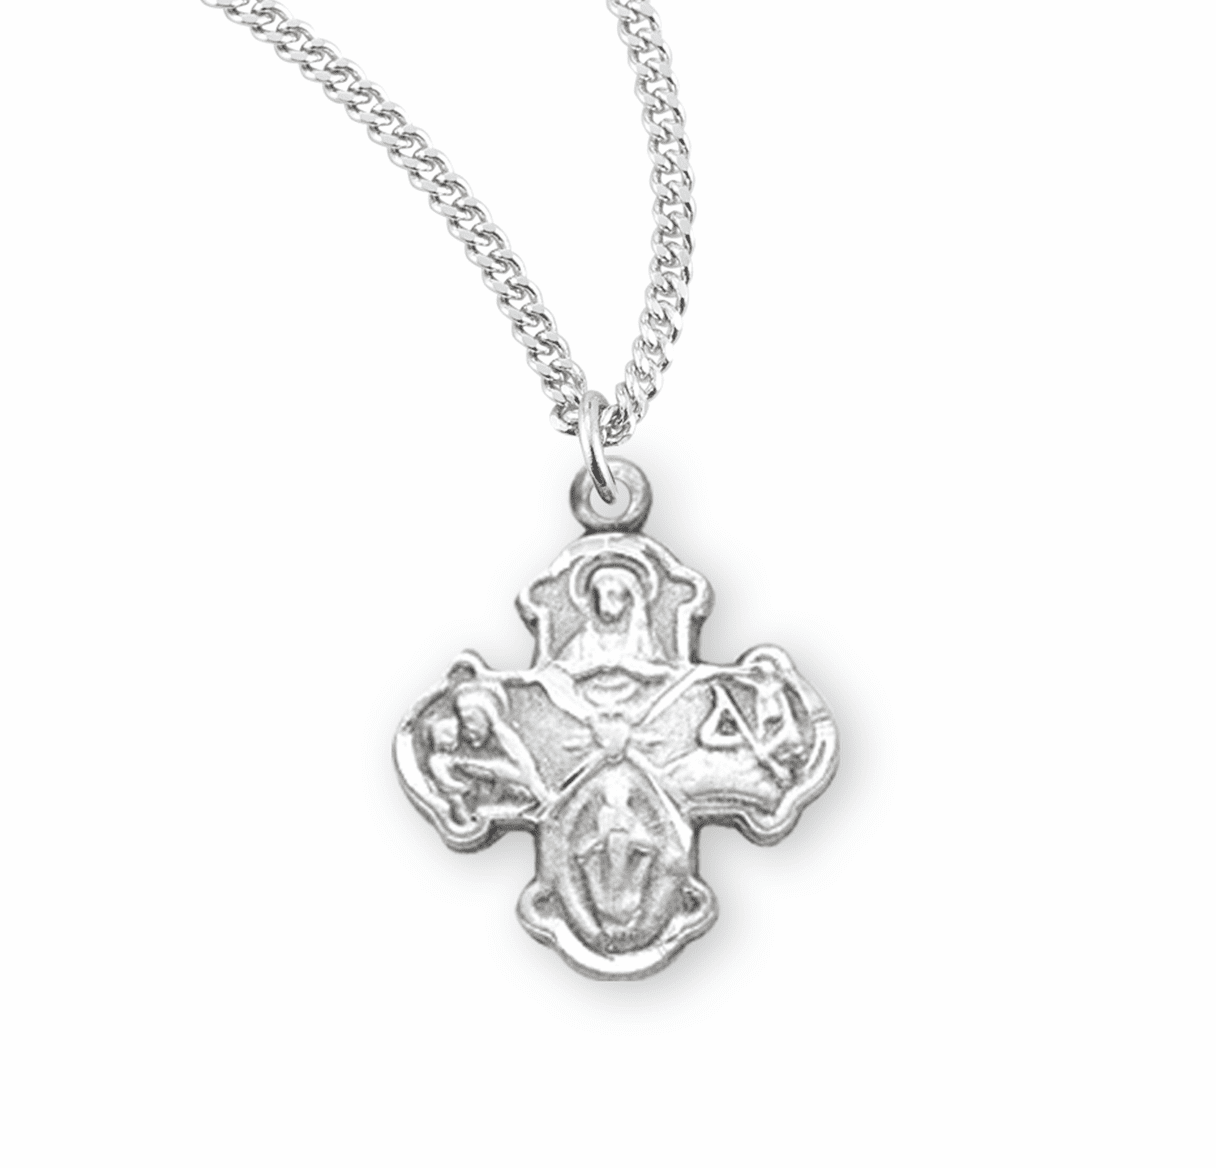 Small 4-Way Sterling Cross Medal Necklace w/Sacred Heart Center by HMH Religious